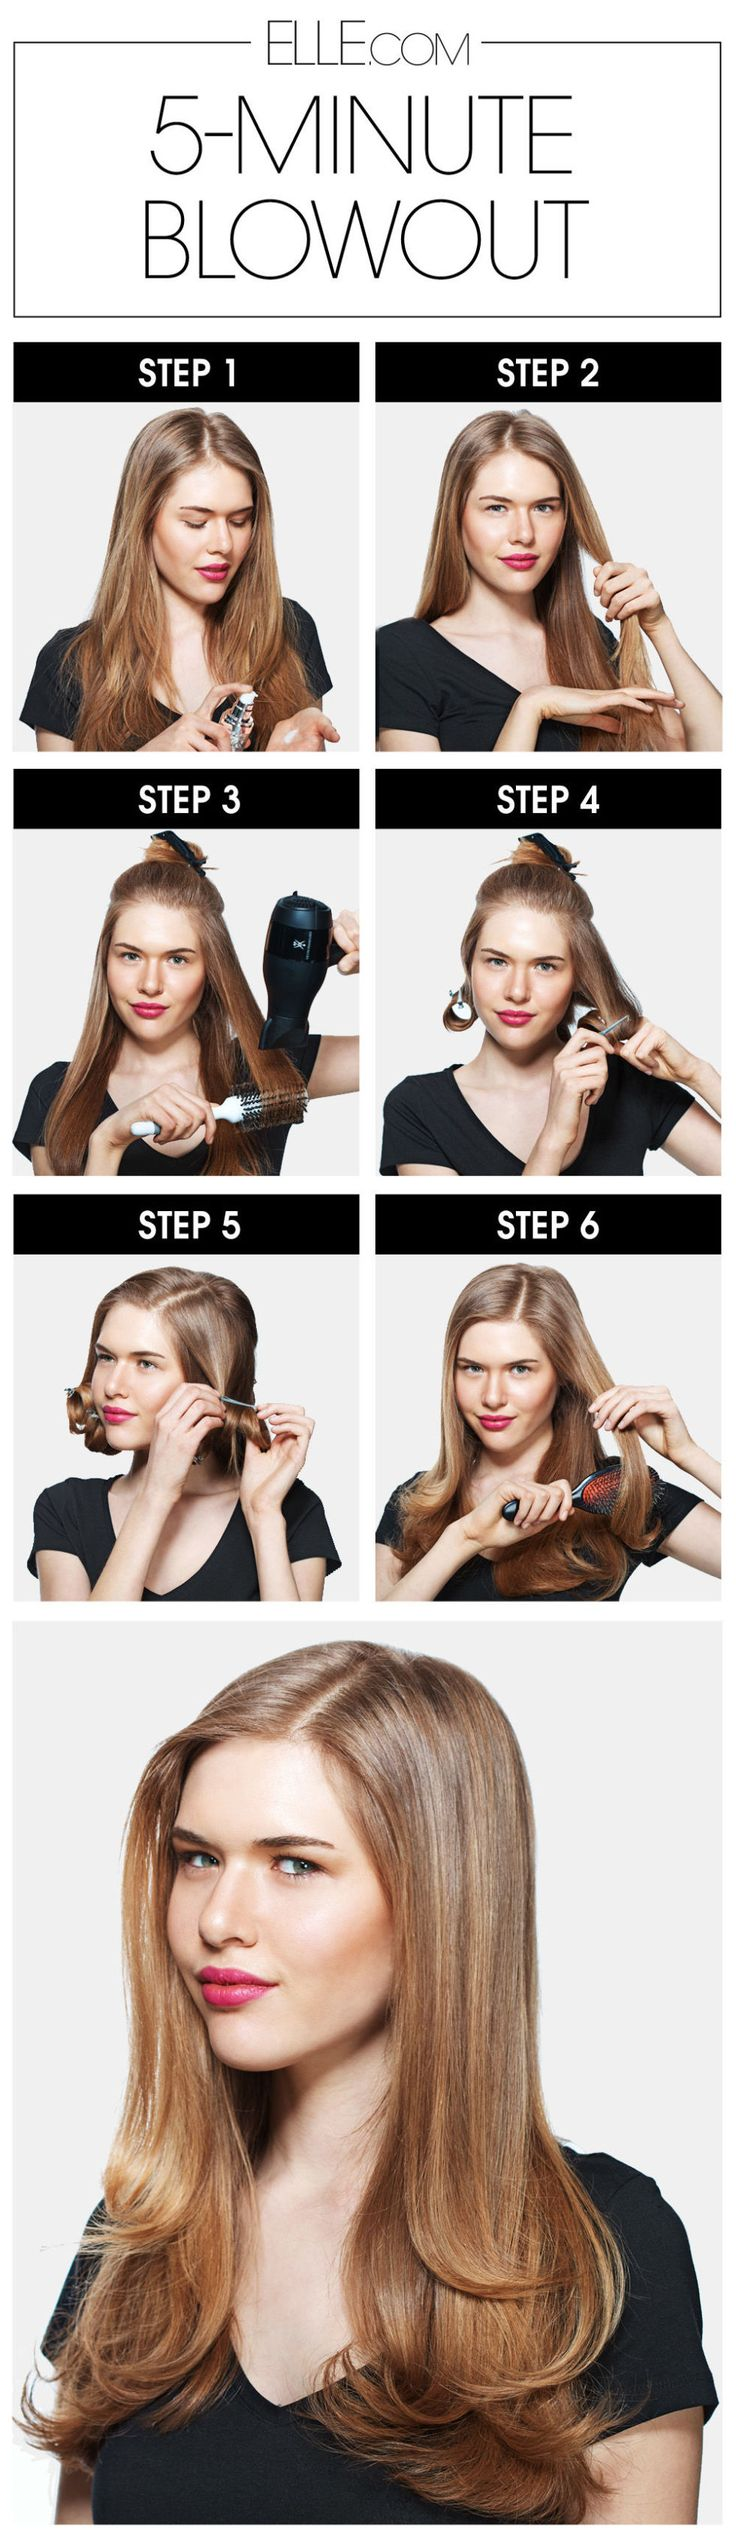 How to Master the Perfect Blowout in Just Five Minutes